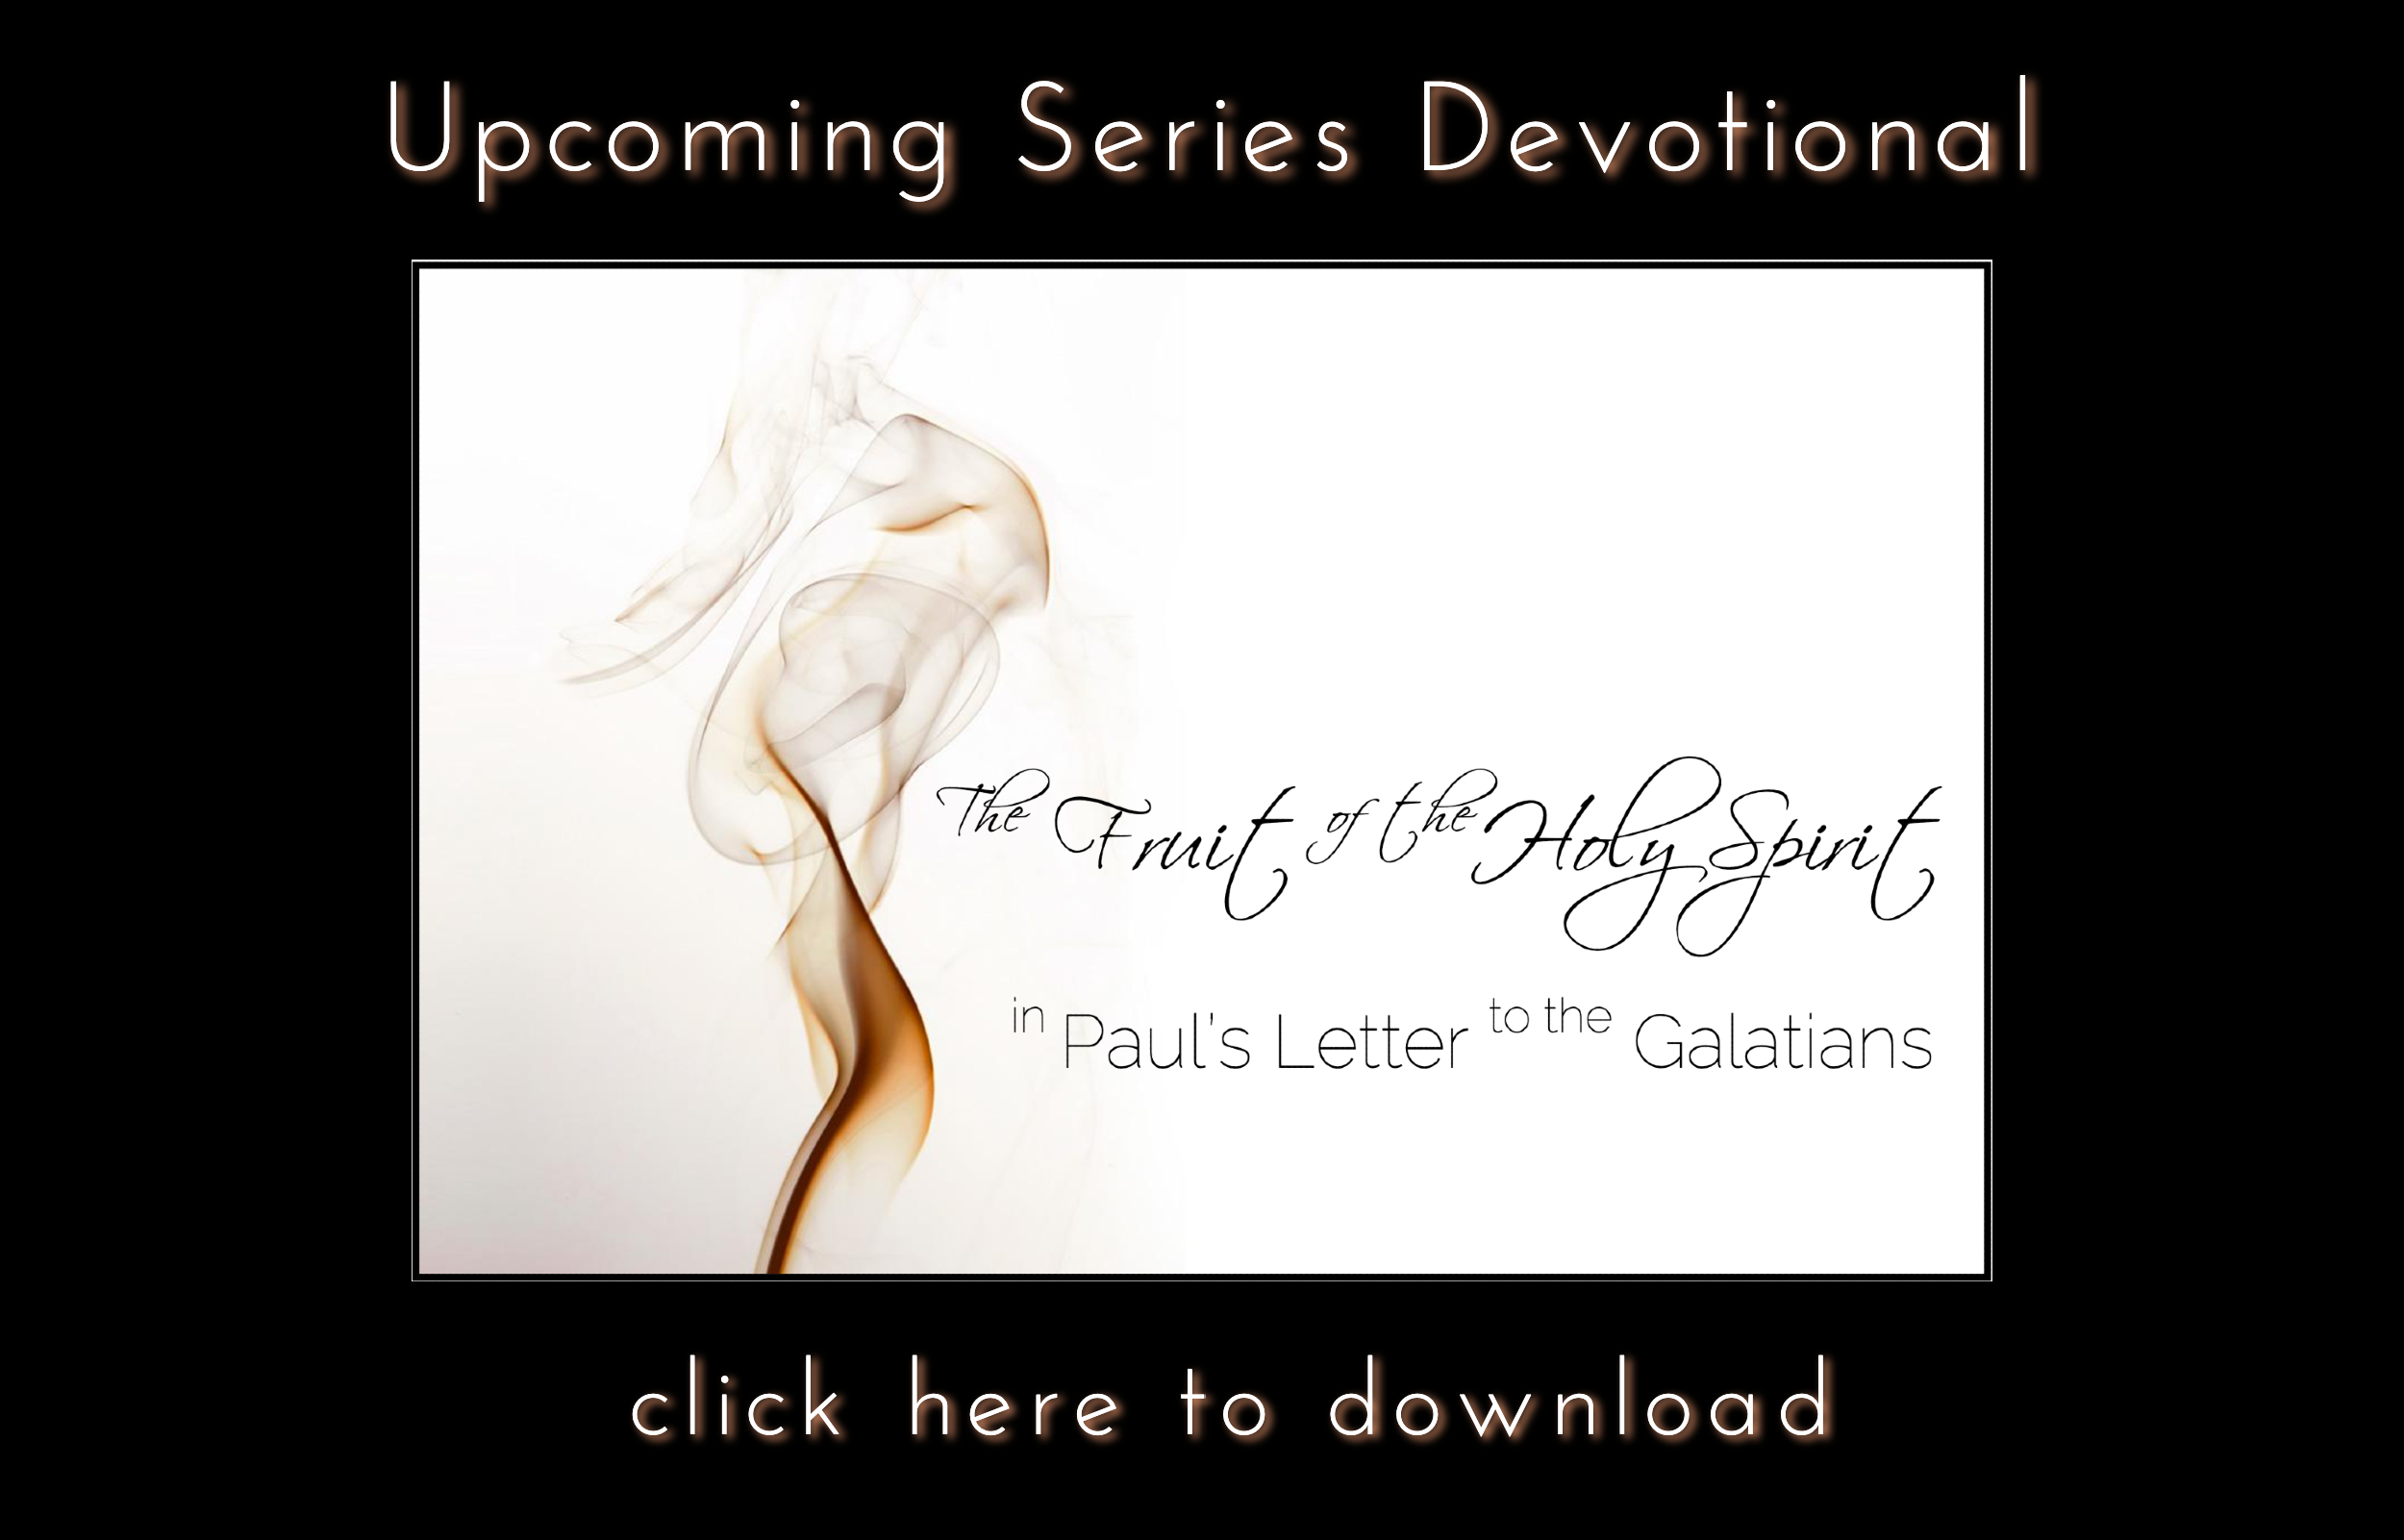 Upcoming Series Devotional Holy Spirit